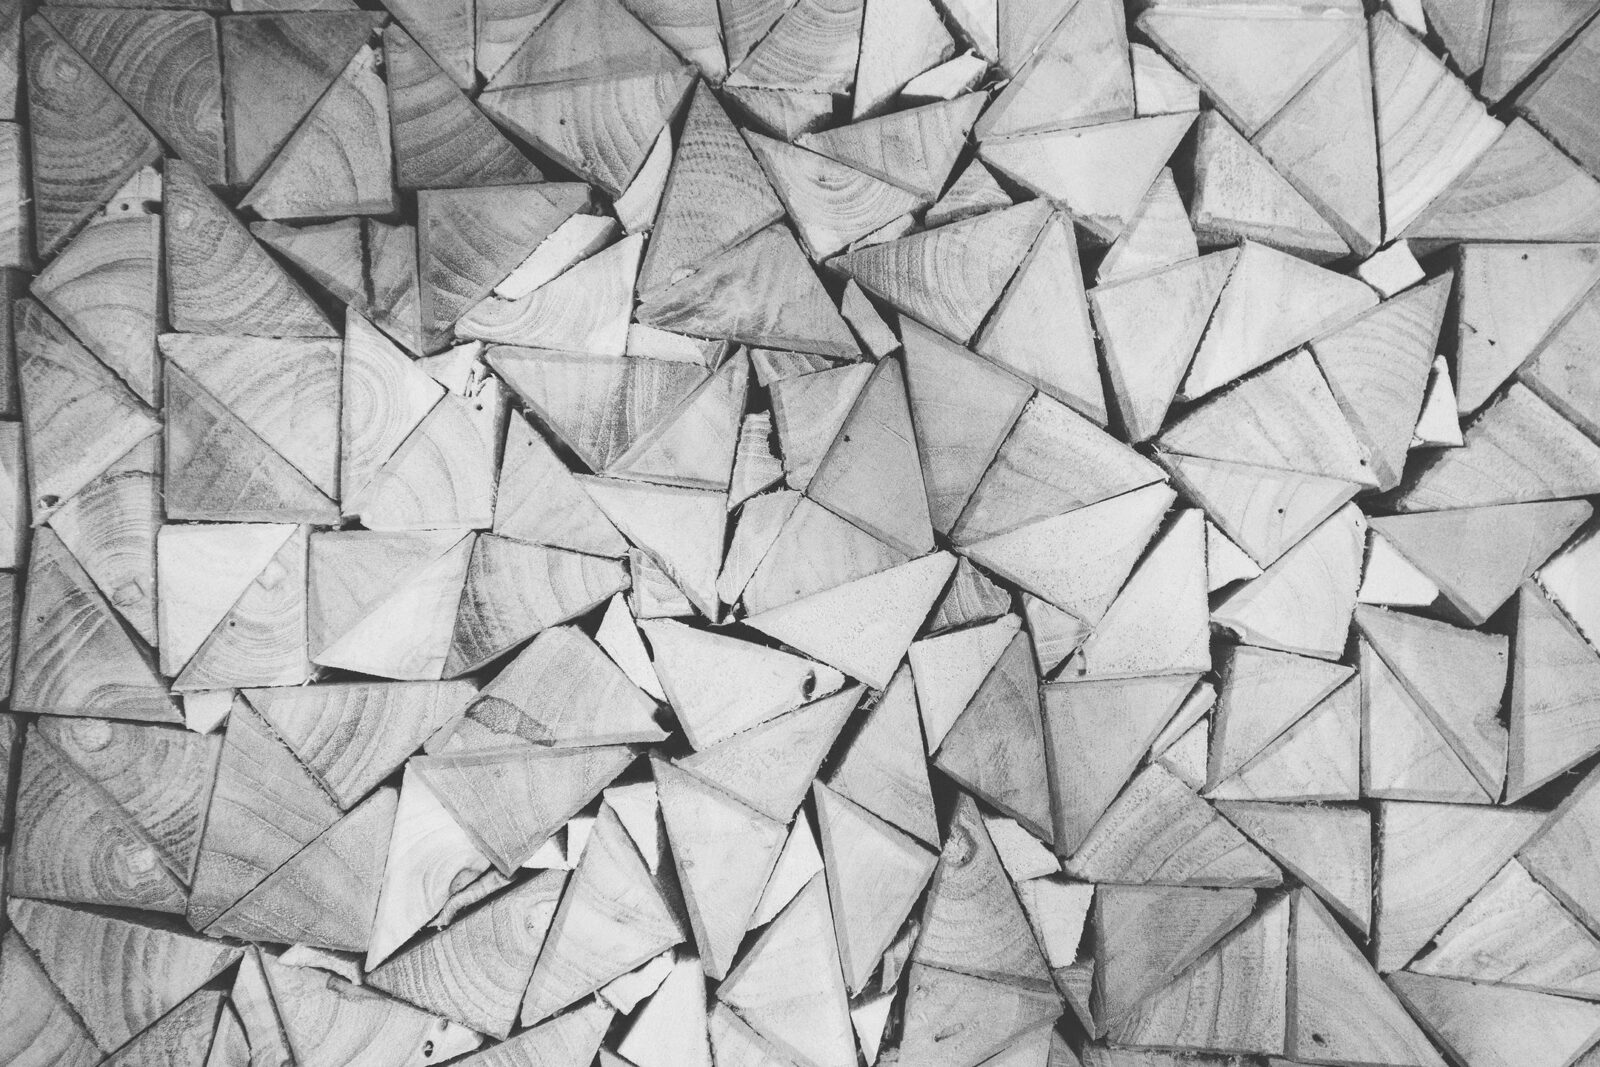 abstract, black and white photo of what may be triangles of wood